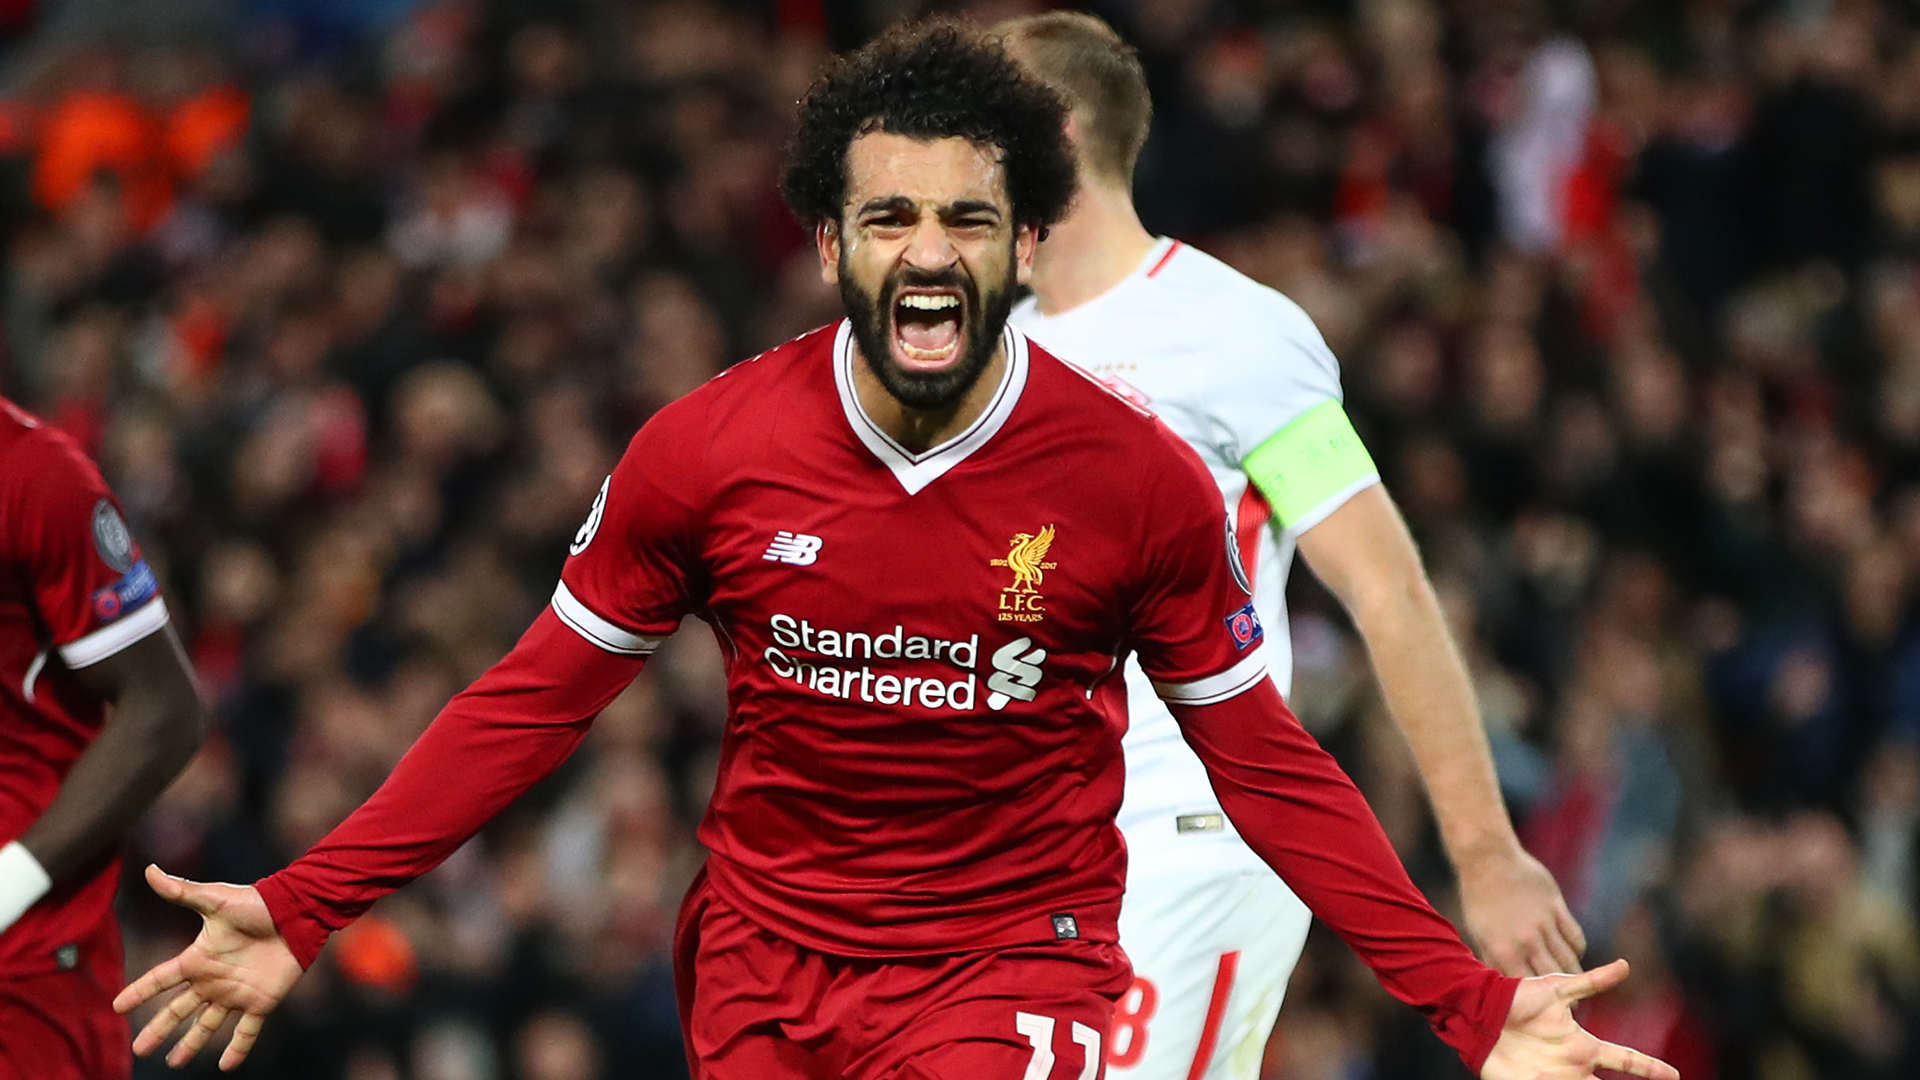 Mohamed-Salah-My-best-Liverpool-goals-and-2018-silverware-ambitions